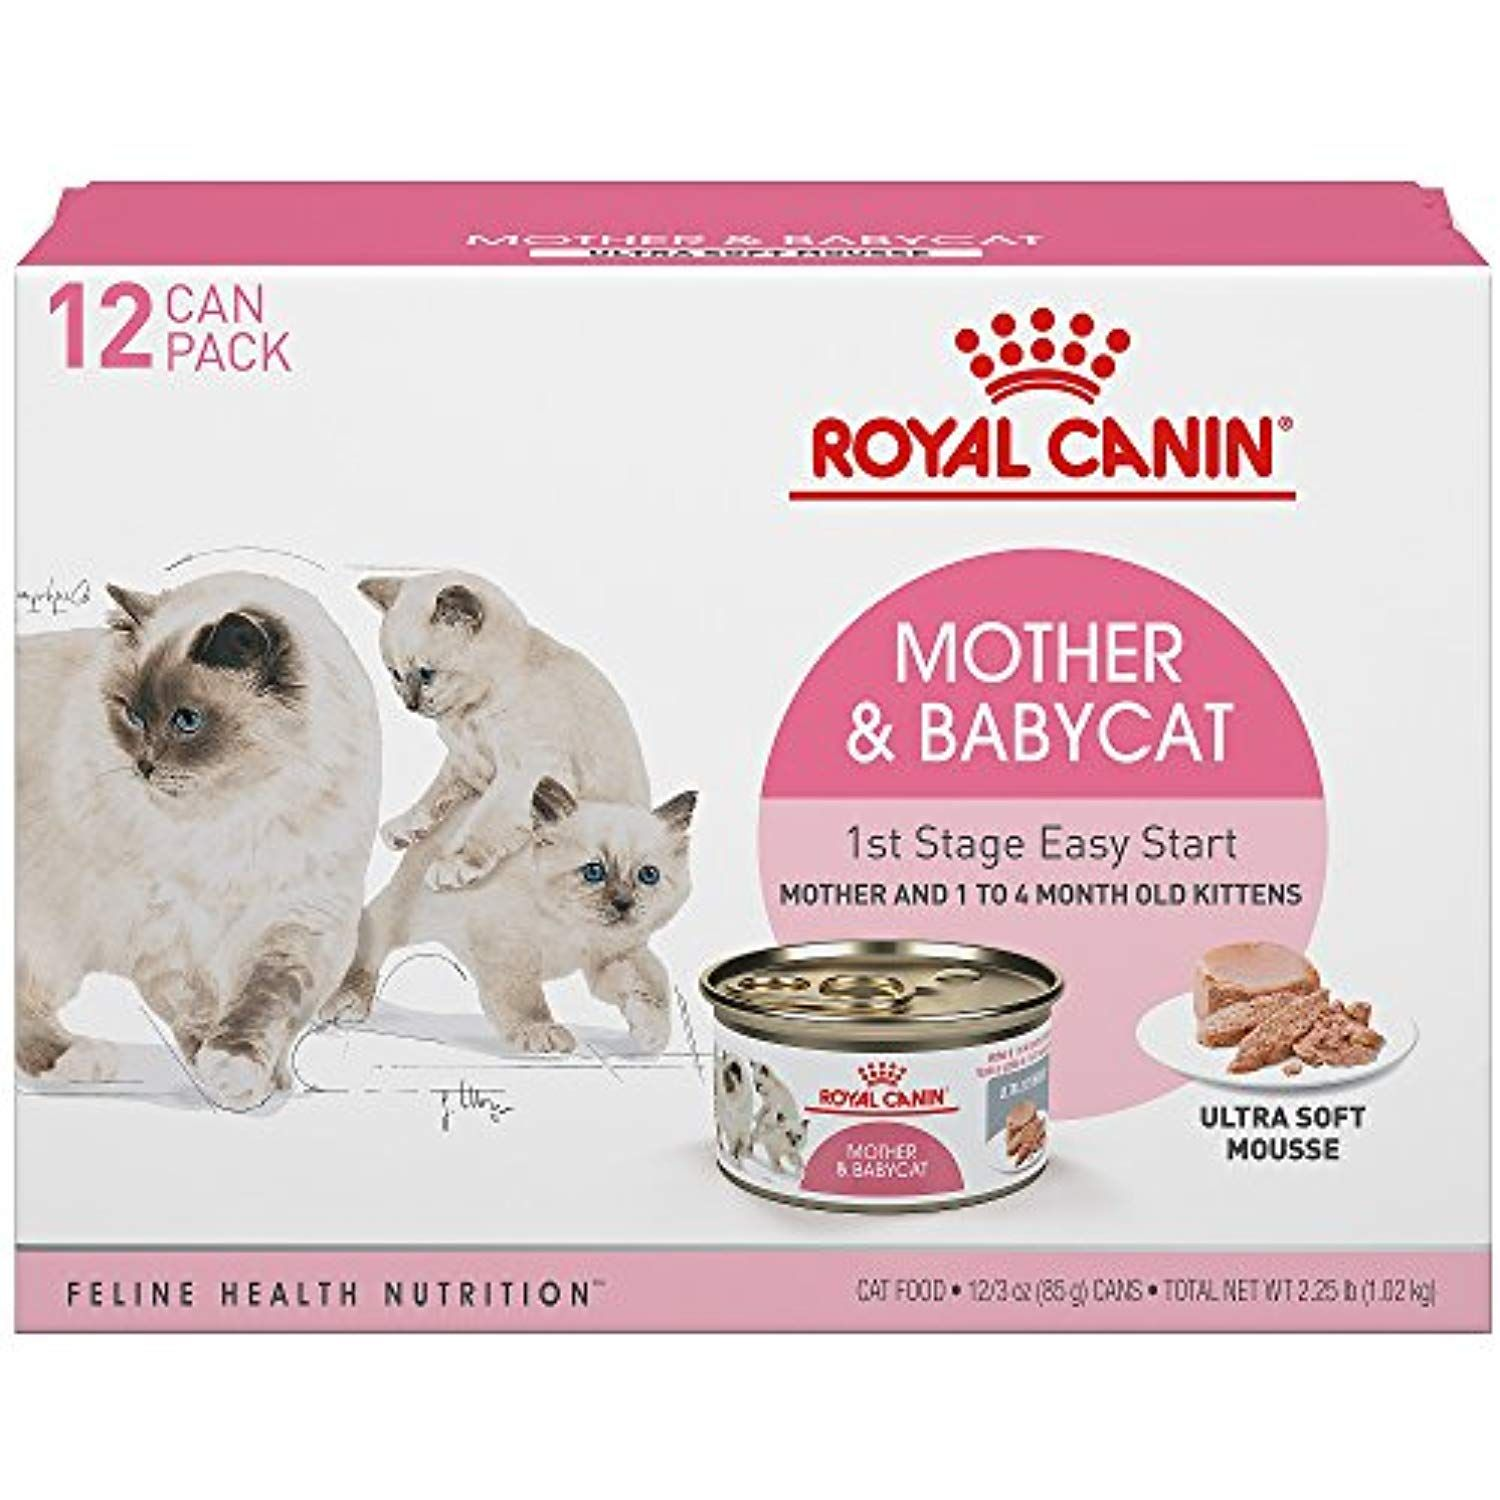 Royal Canin 175012 Feline Health Nutrition Ultra Soft Mousse Canned Cat Food 12 Pack 3 Oz You Can Find Out More Detai Kitten Food Cat Food Feline Health